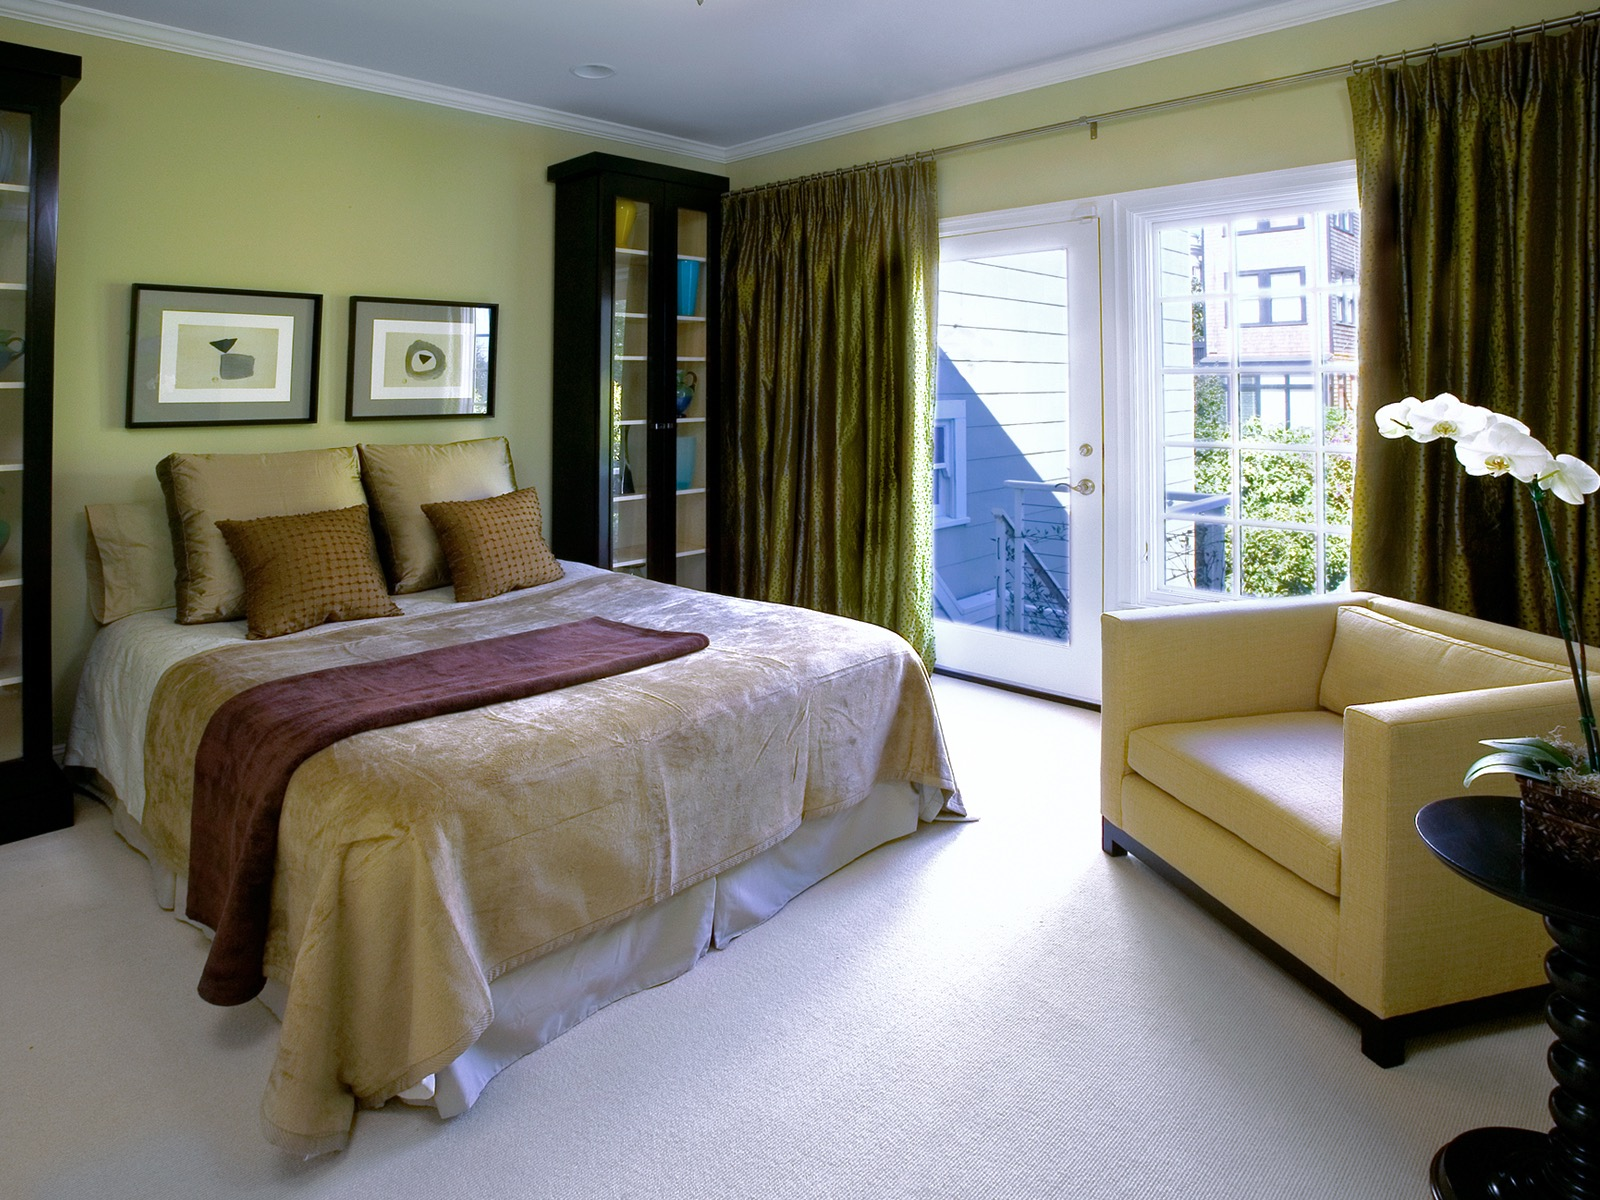 20 Lovely Bedroom Paint And Color Ideas